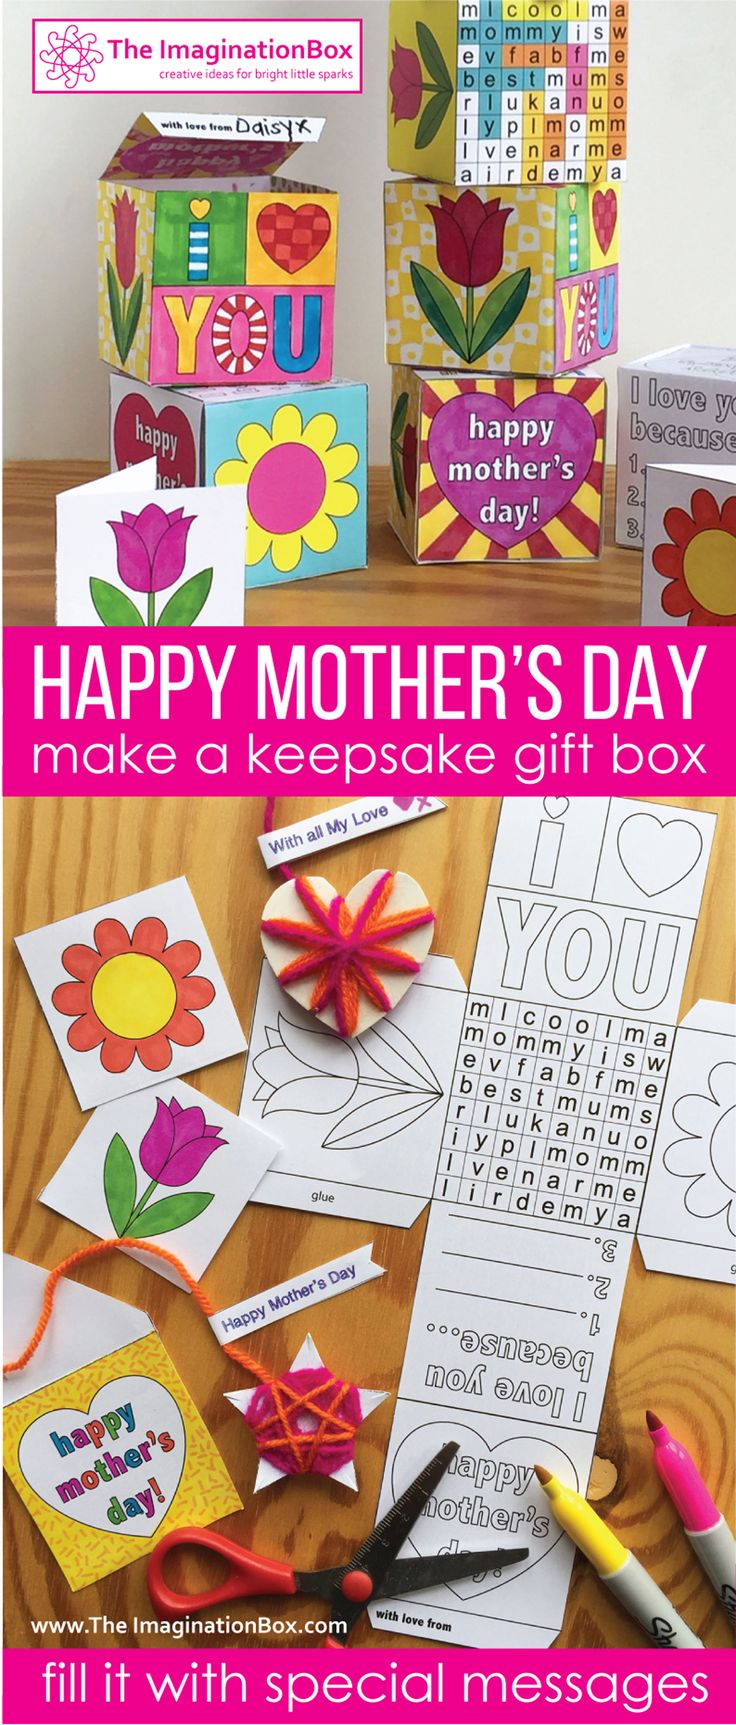 Are you looking for a creative, fun Mother's Day art and craft activity for kids to make and take home for mum to treasure? This imaginative 'keepsake box' can be personalised by each student on the outside and filled with special surprises inside.